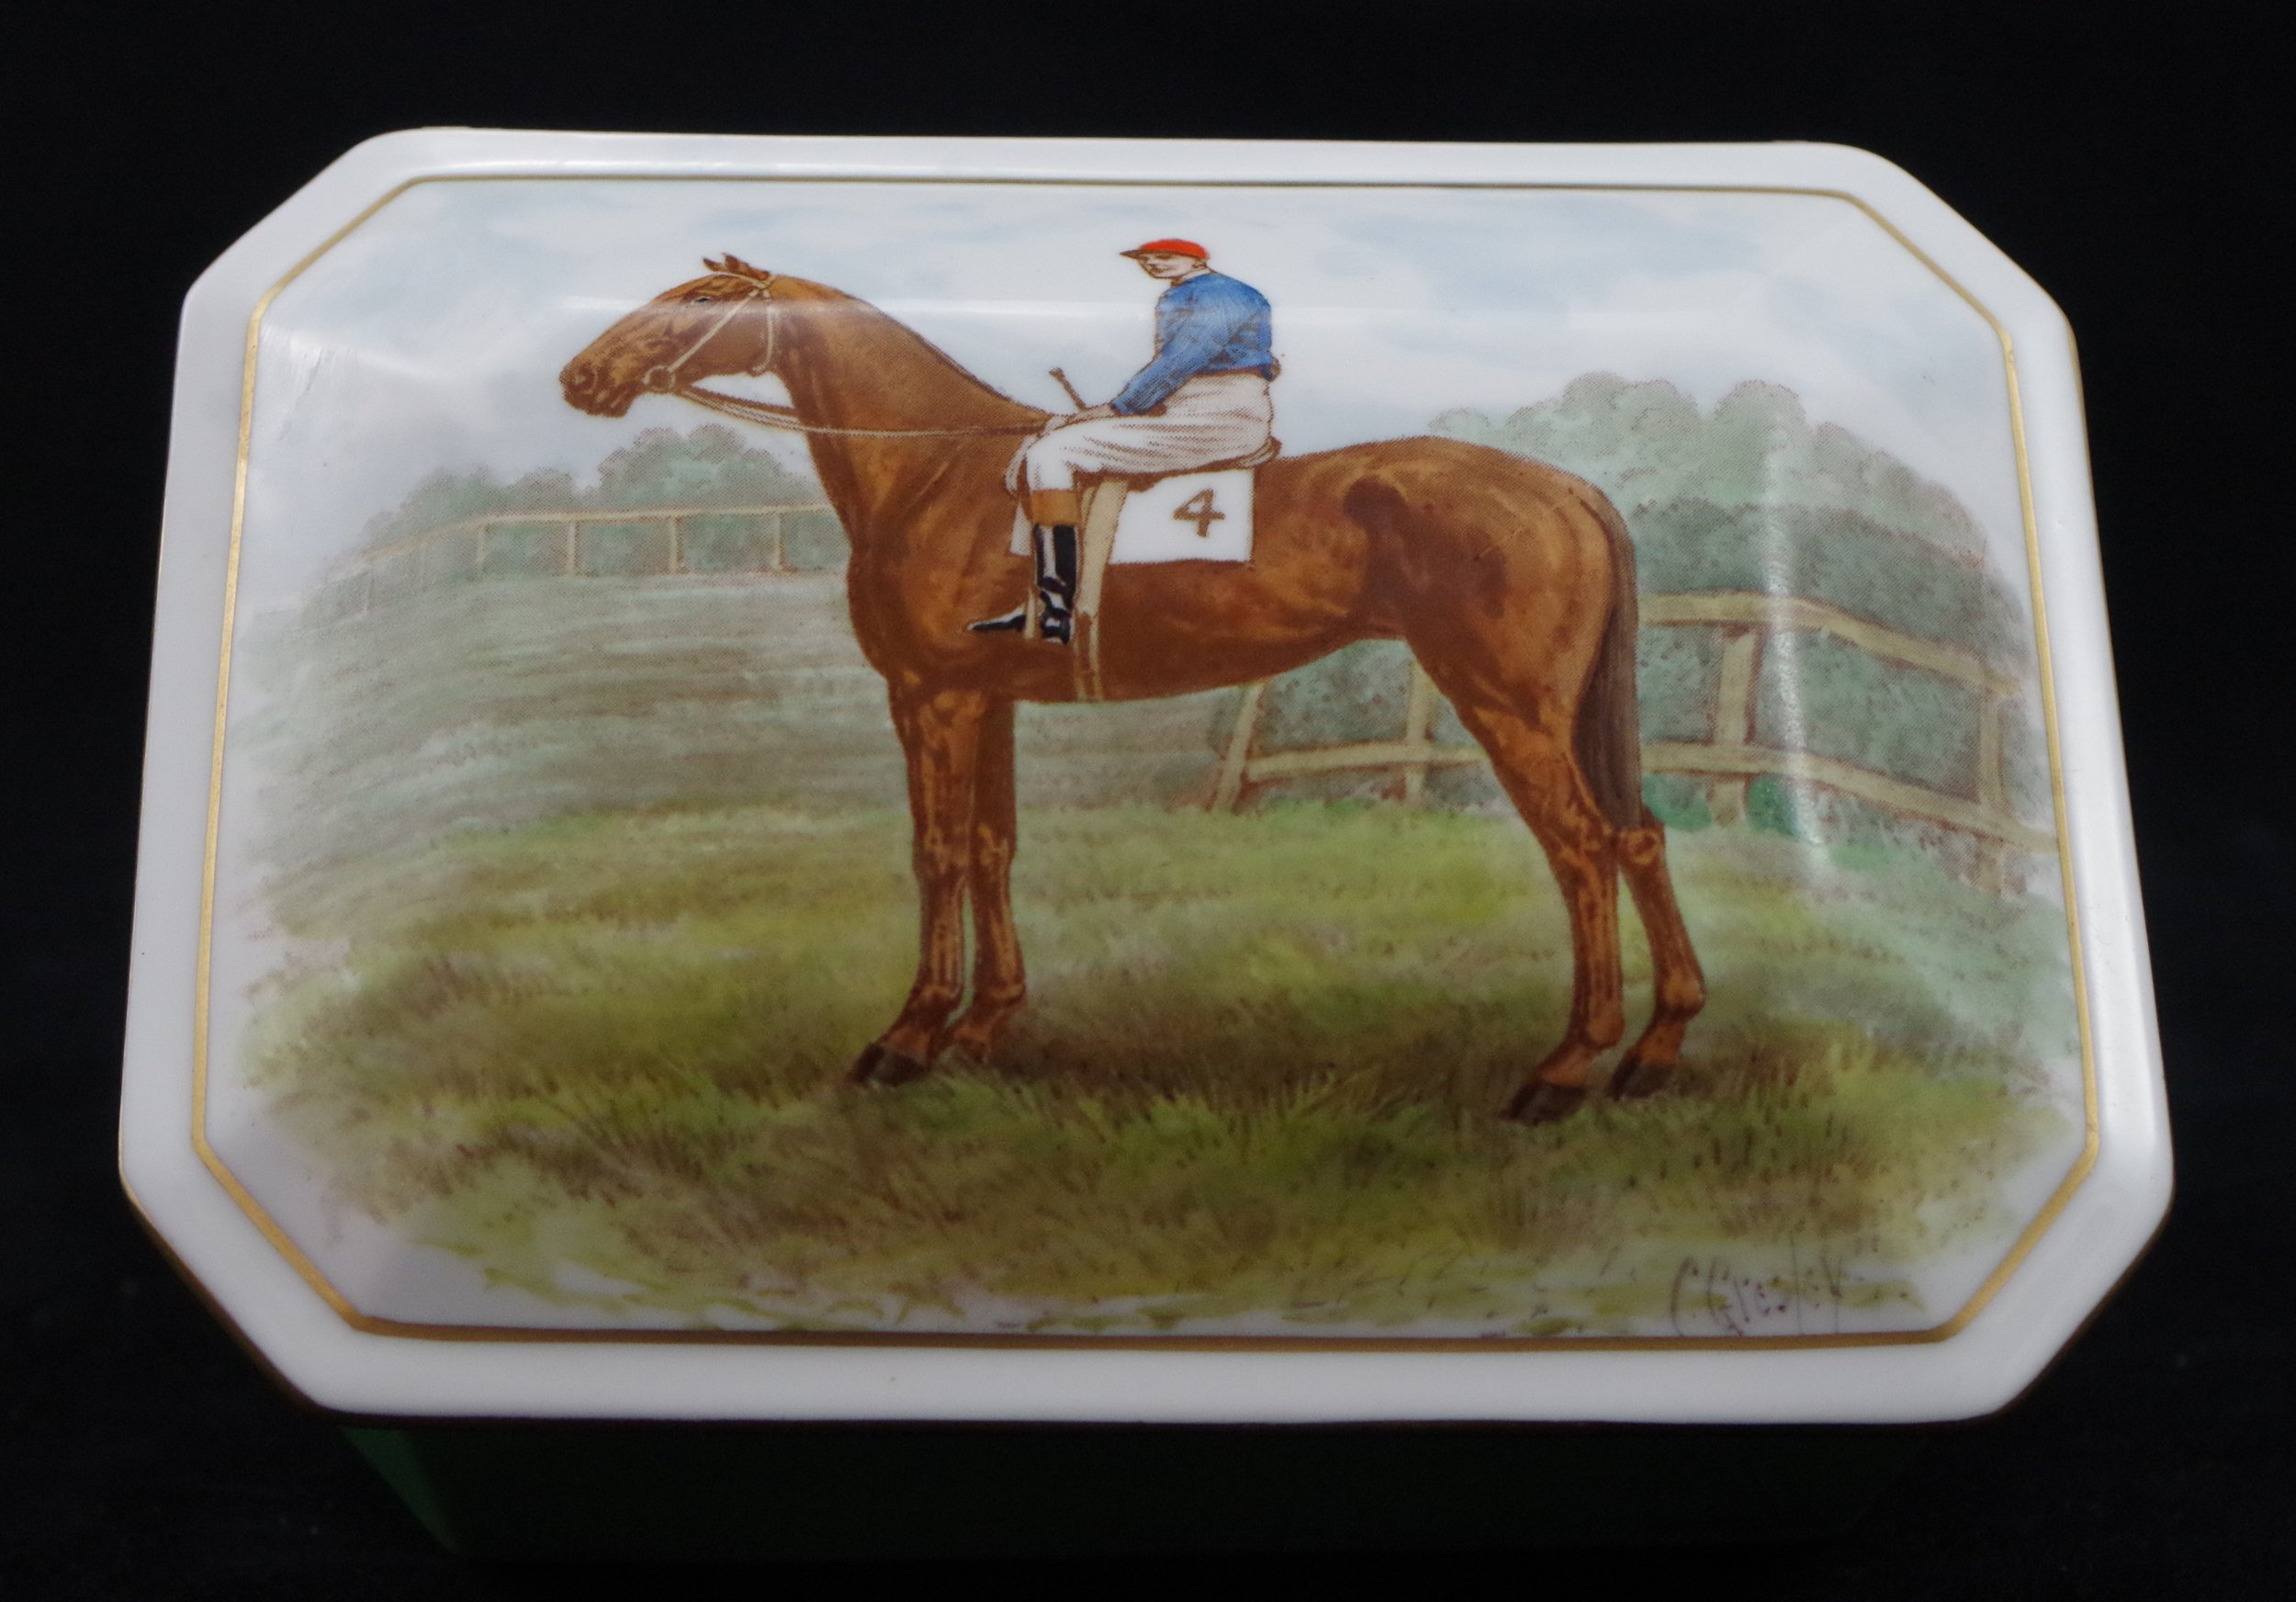 royal-crown-derby-box-1754-shape-gresley-jockey-scene